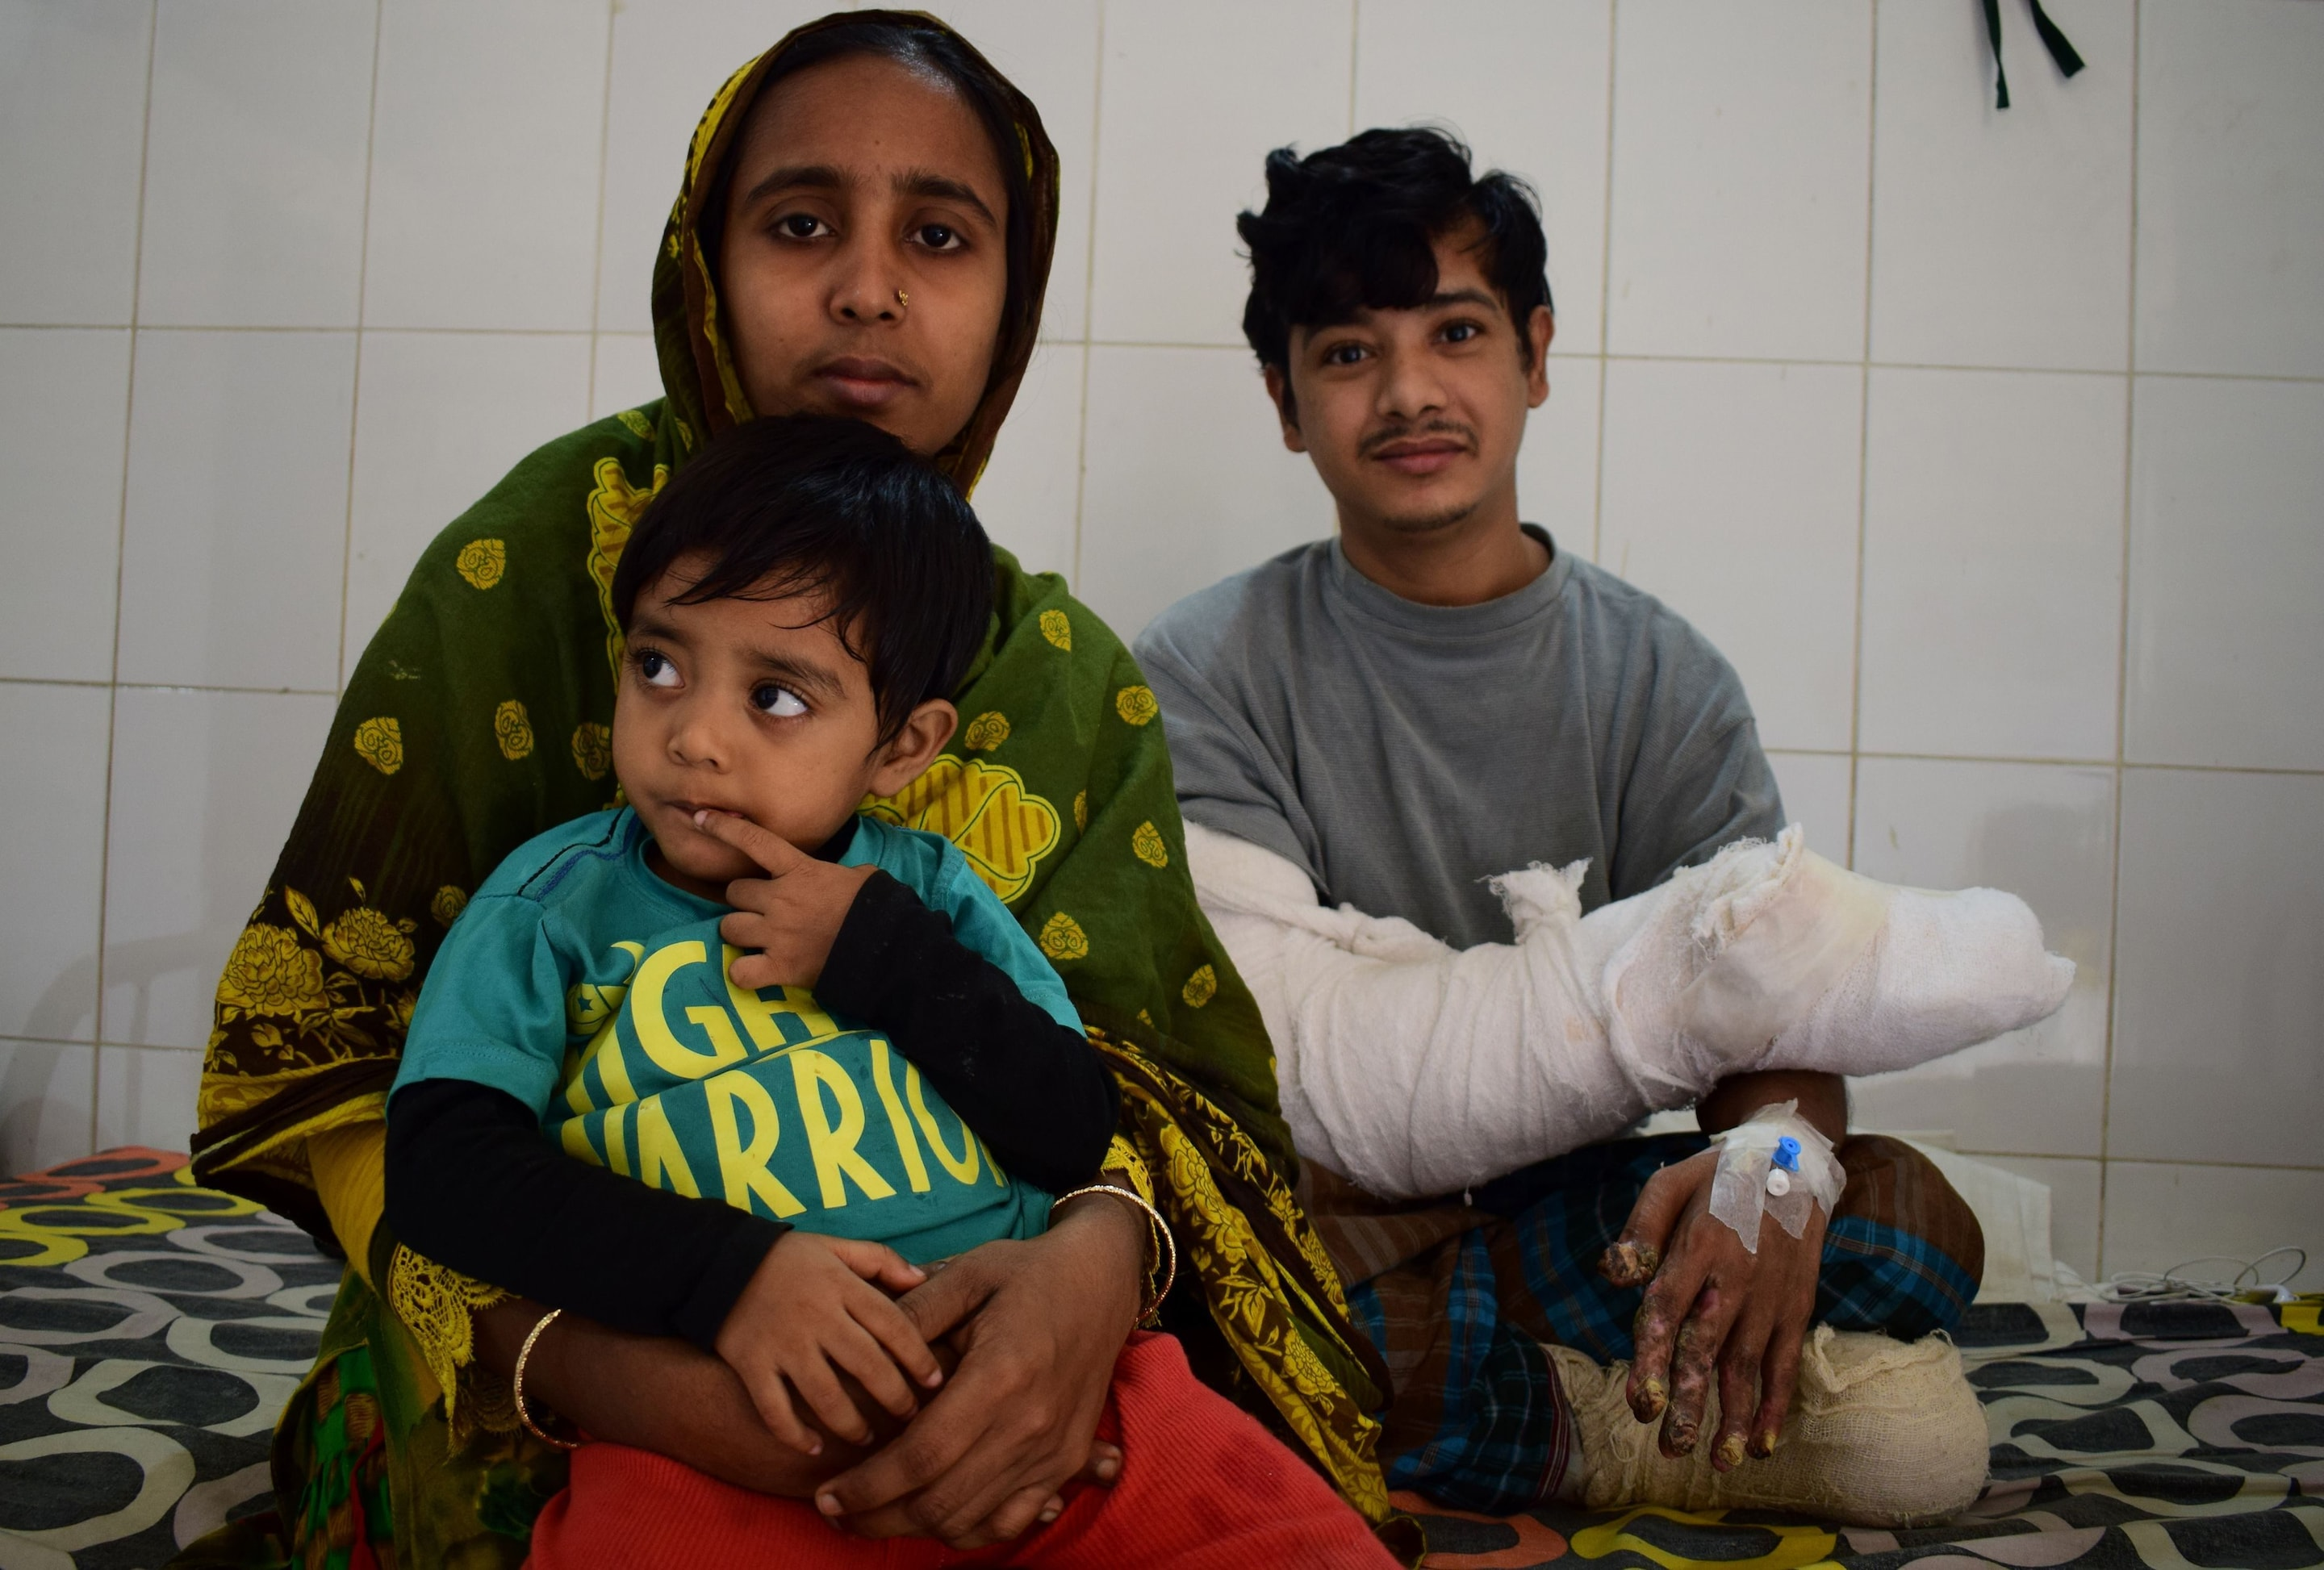 25/6/2019· a man in bangaladesh named abul bajandar has been suffering an extremely rare disease called epidermodysplasia verruciformis. Now I Can Hold My Daughter Hope For Bangladesh Tree Man After 16 Surgeries To Remove Growths